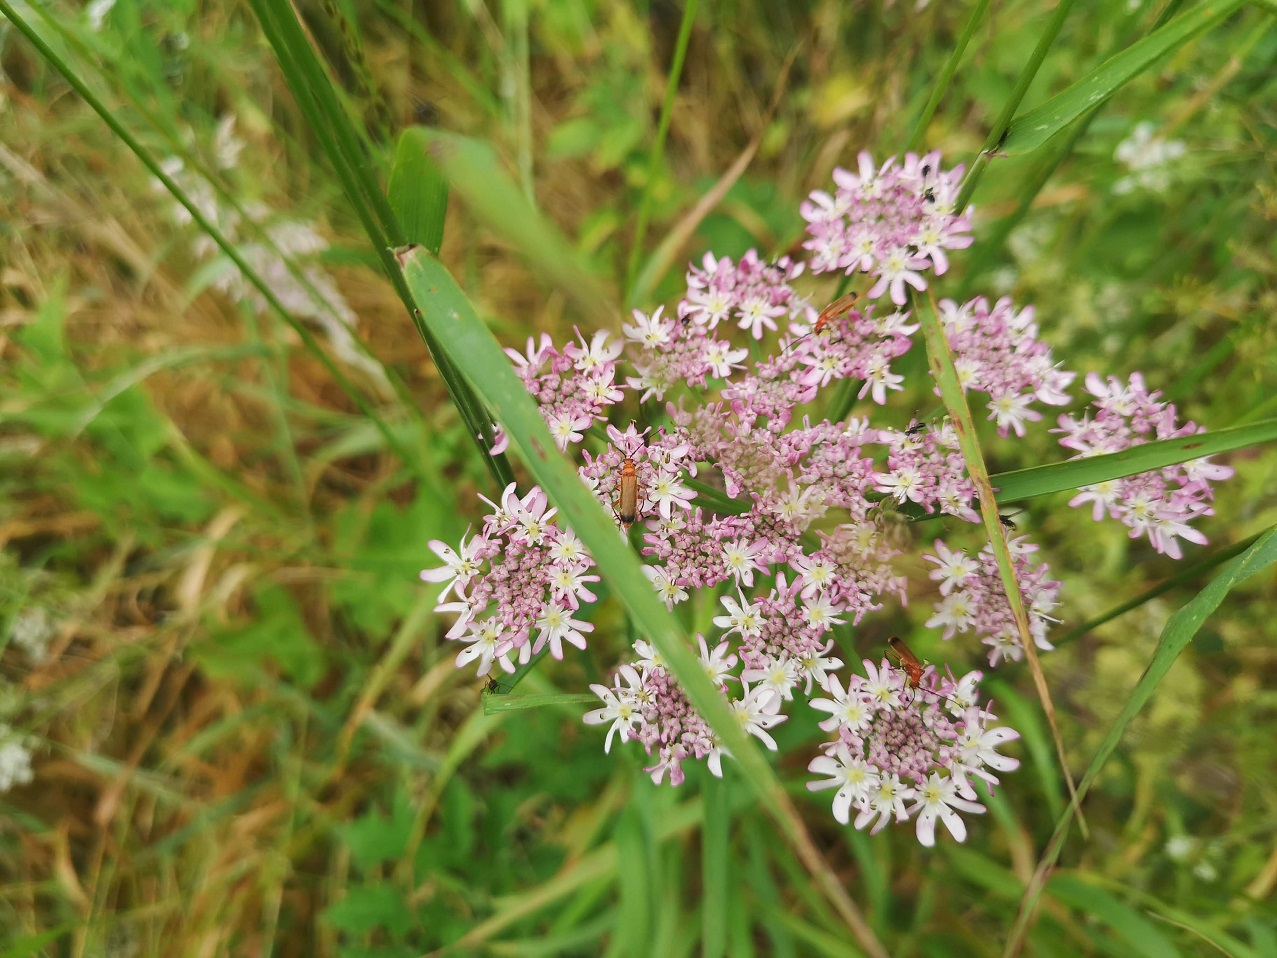 Clusters of wild flowers